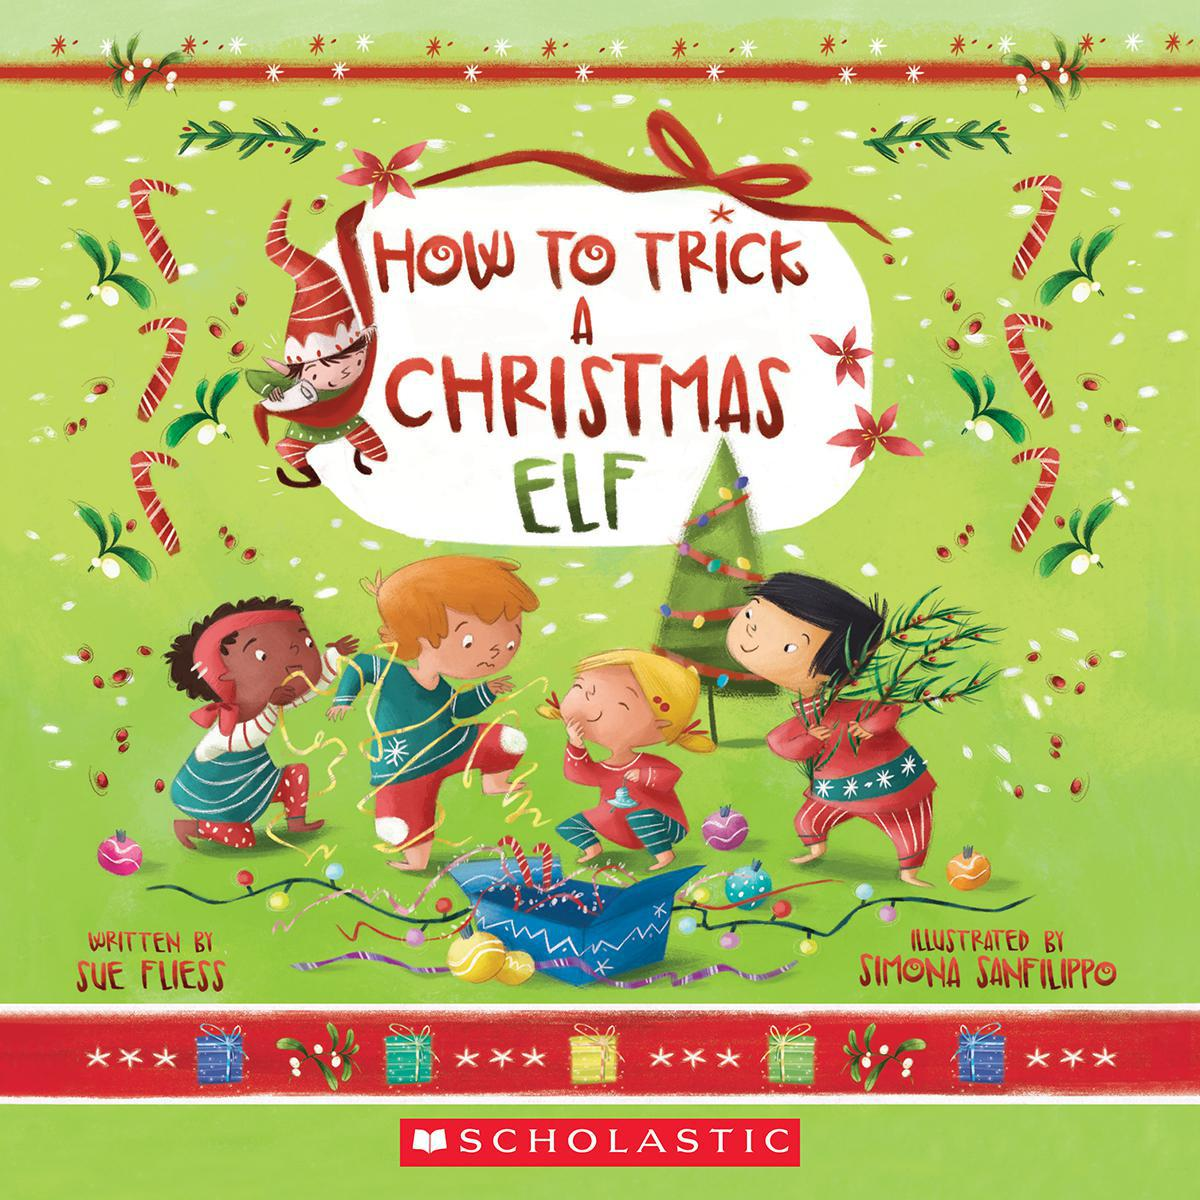 How to Trick a Christmas Elf